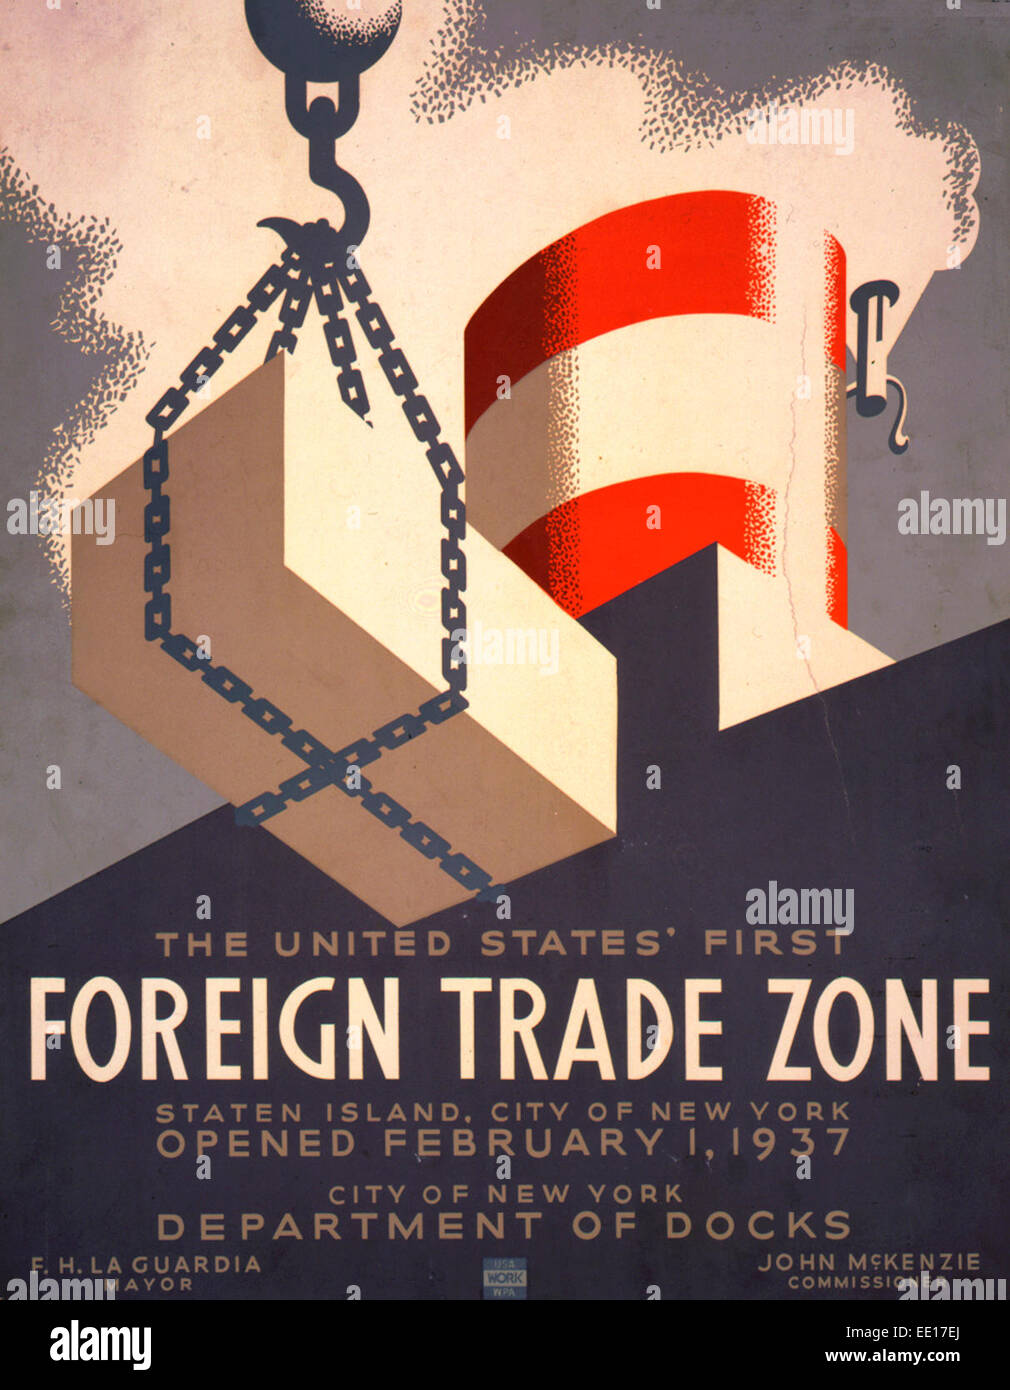 The United States' first foreign trade zone, Staten Island